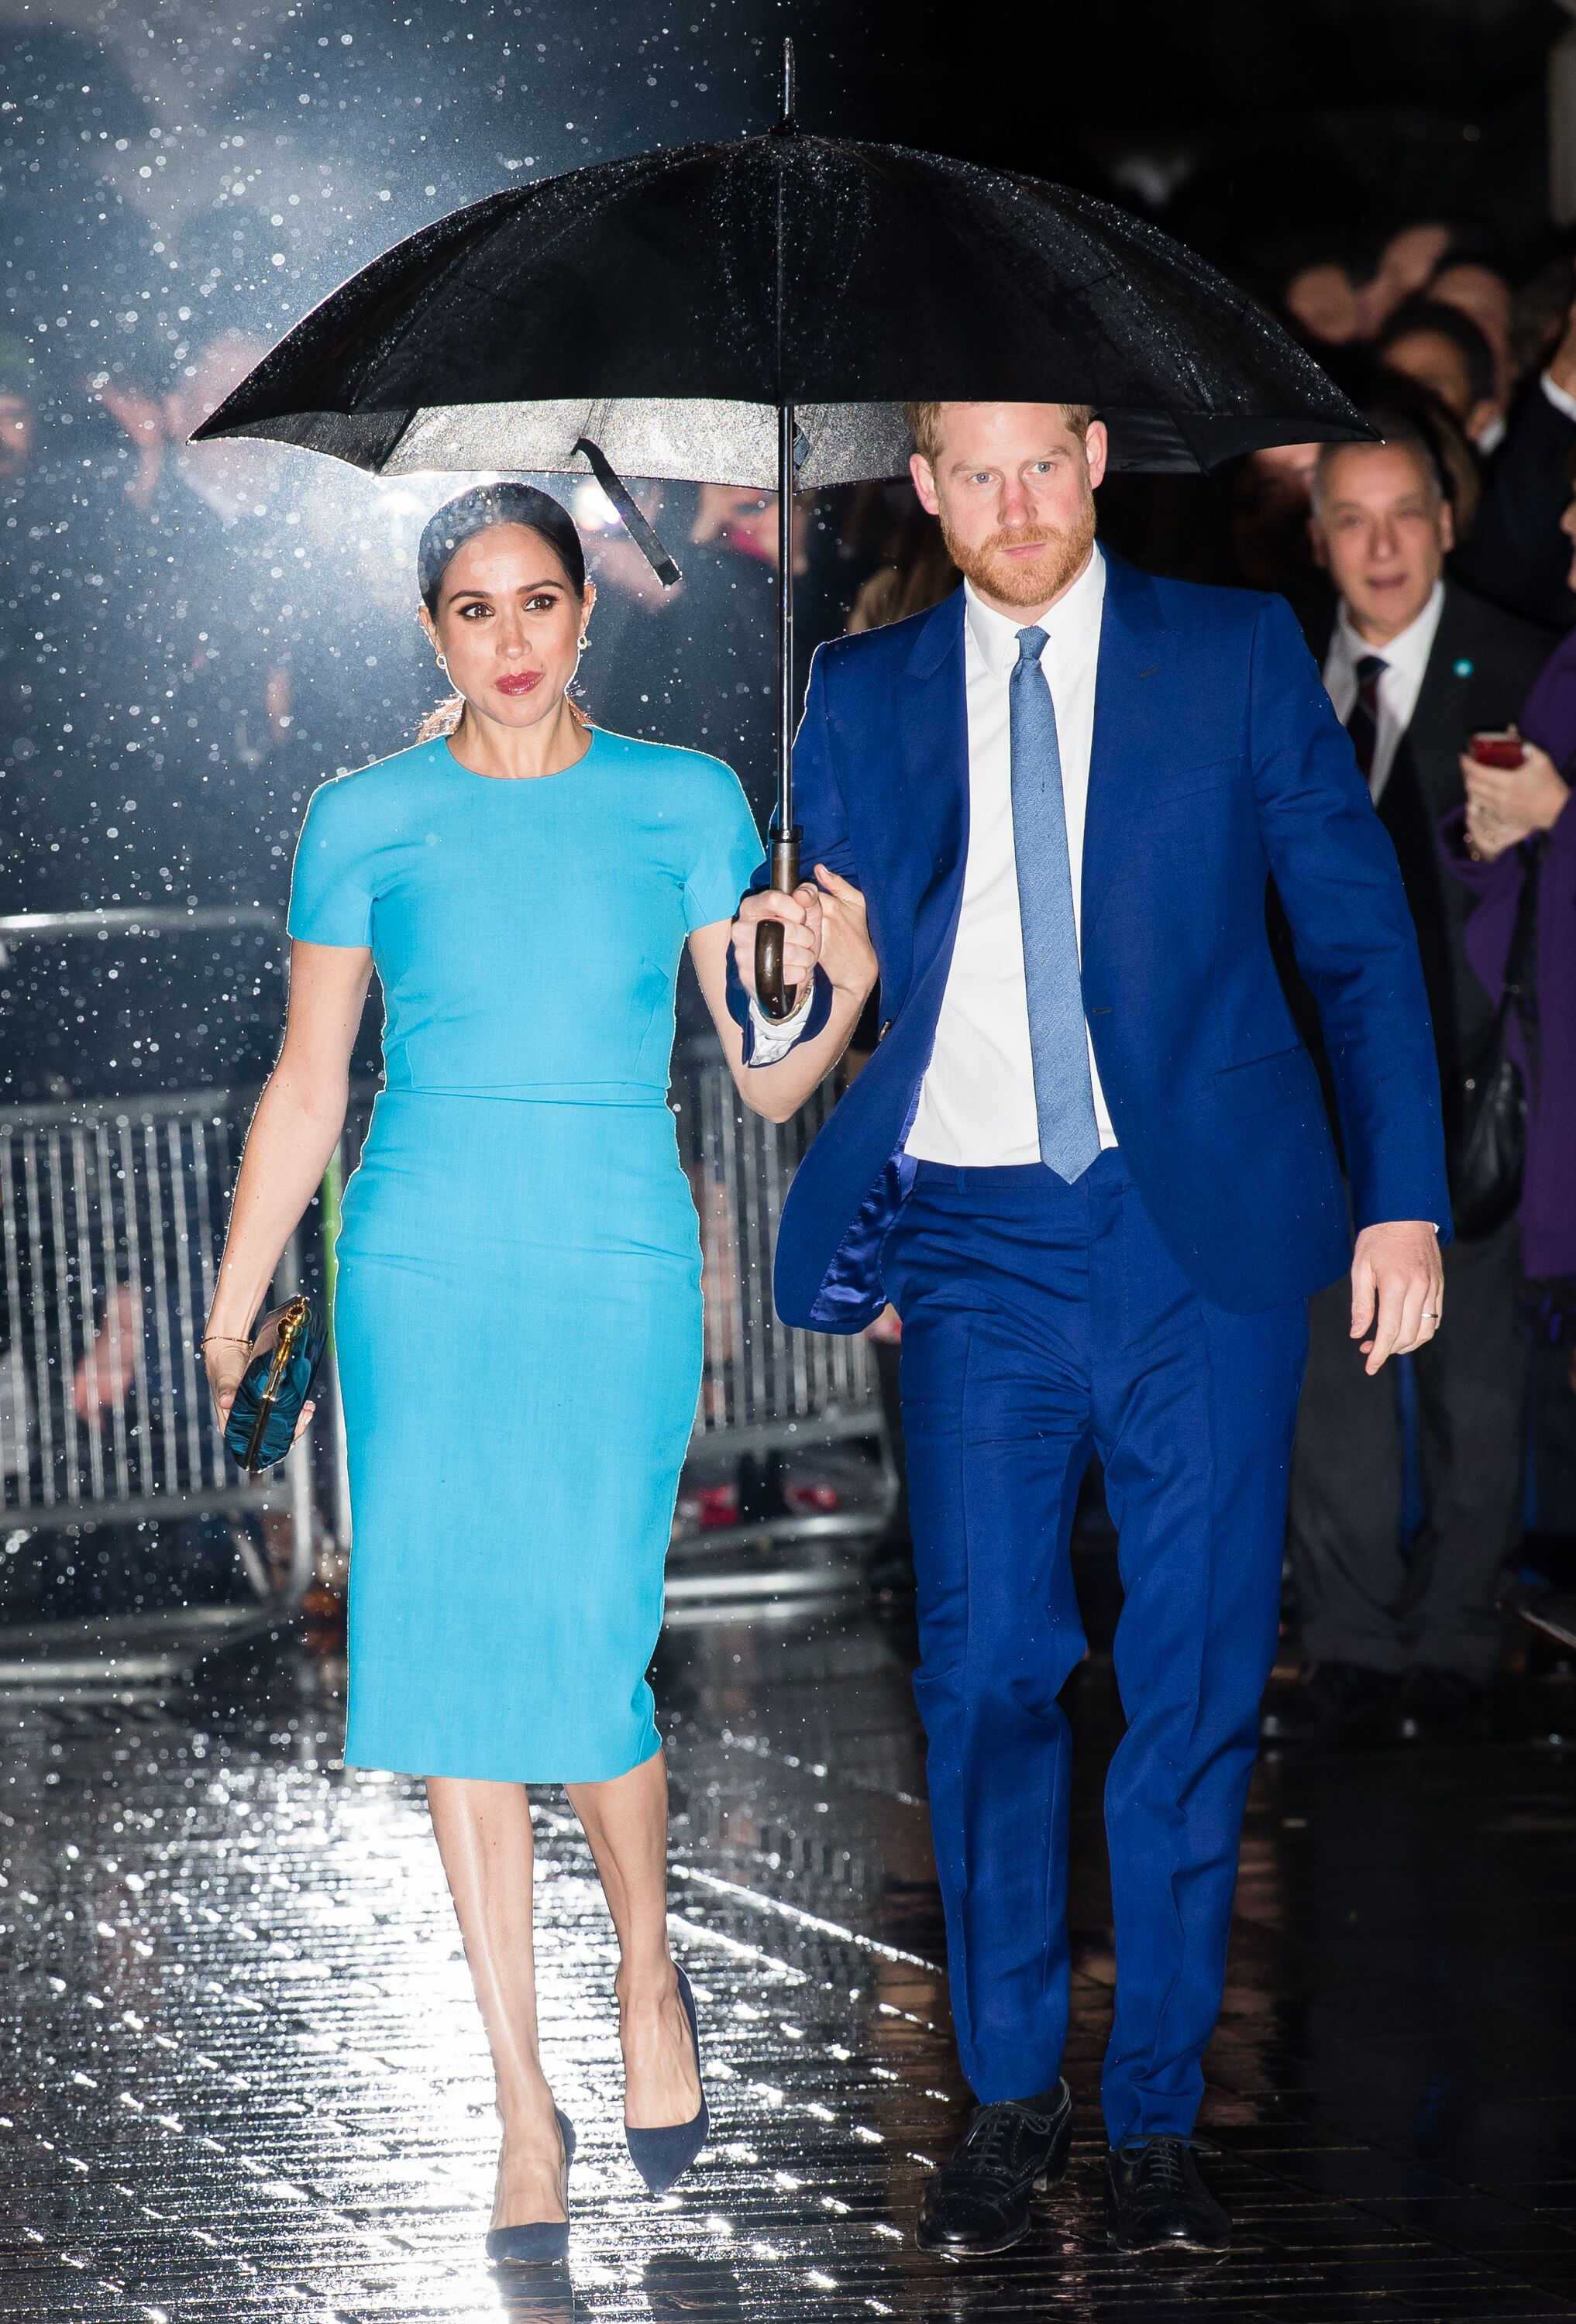 Duchess Meghan and Prince Harry at The Endeavour Fund Awards at Mansion House on March 05, 2020, in London, England | Photo: Samir Hussein/WireImage/Getty Images